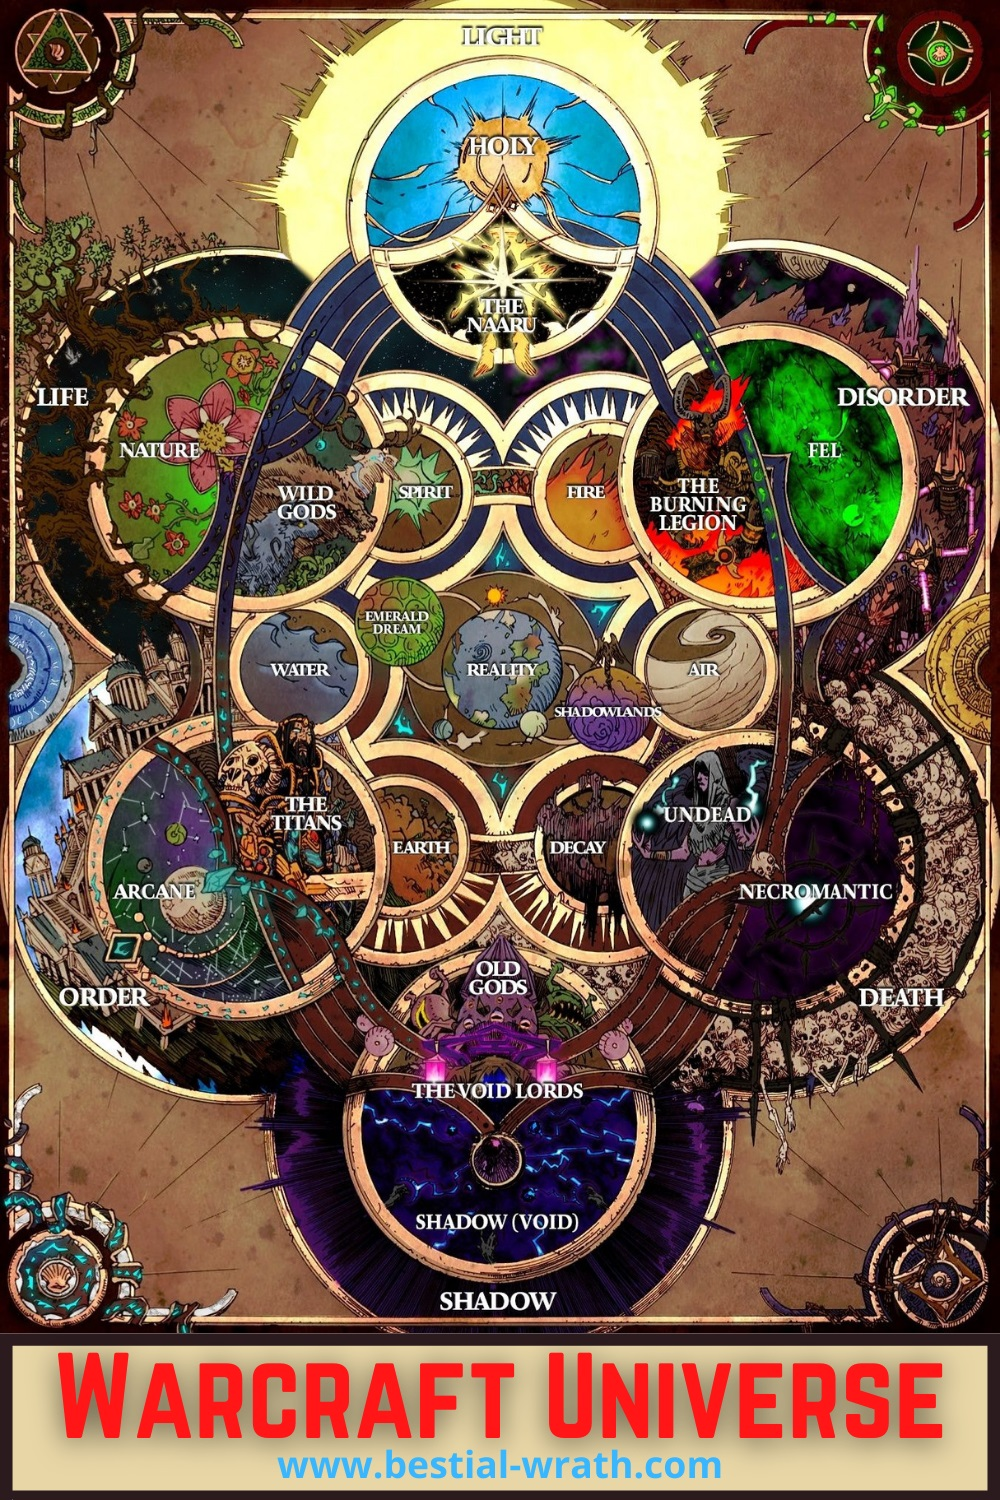 World of Warcraft Universe